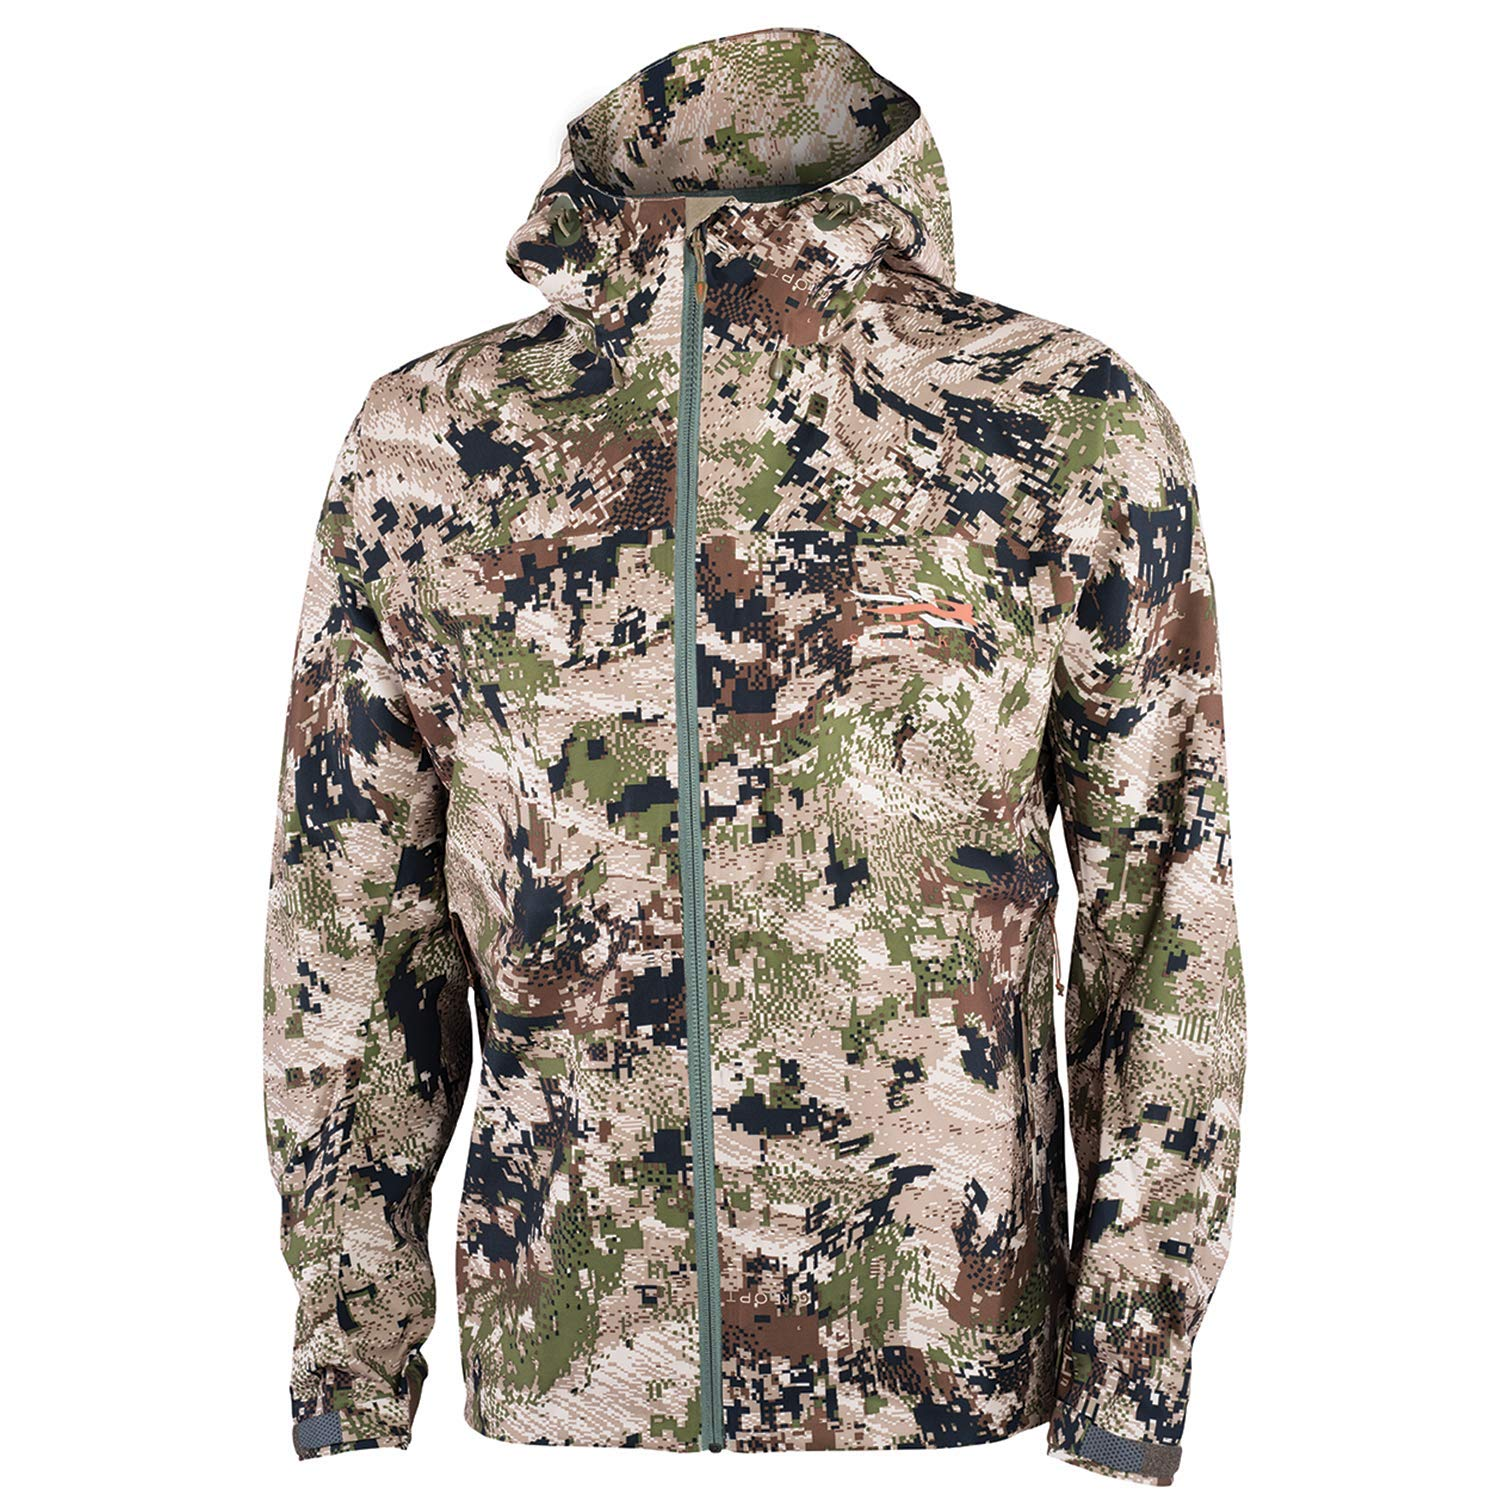 SITKA Gear New for 2019 Youth Cyclone Jacket Optifade Subalpine Youth Small by SITKA